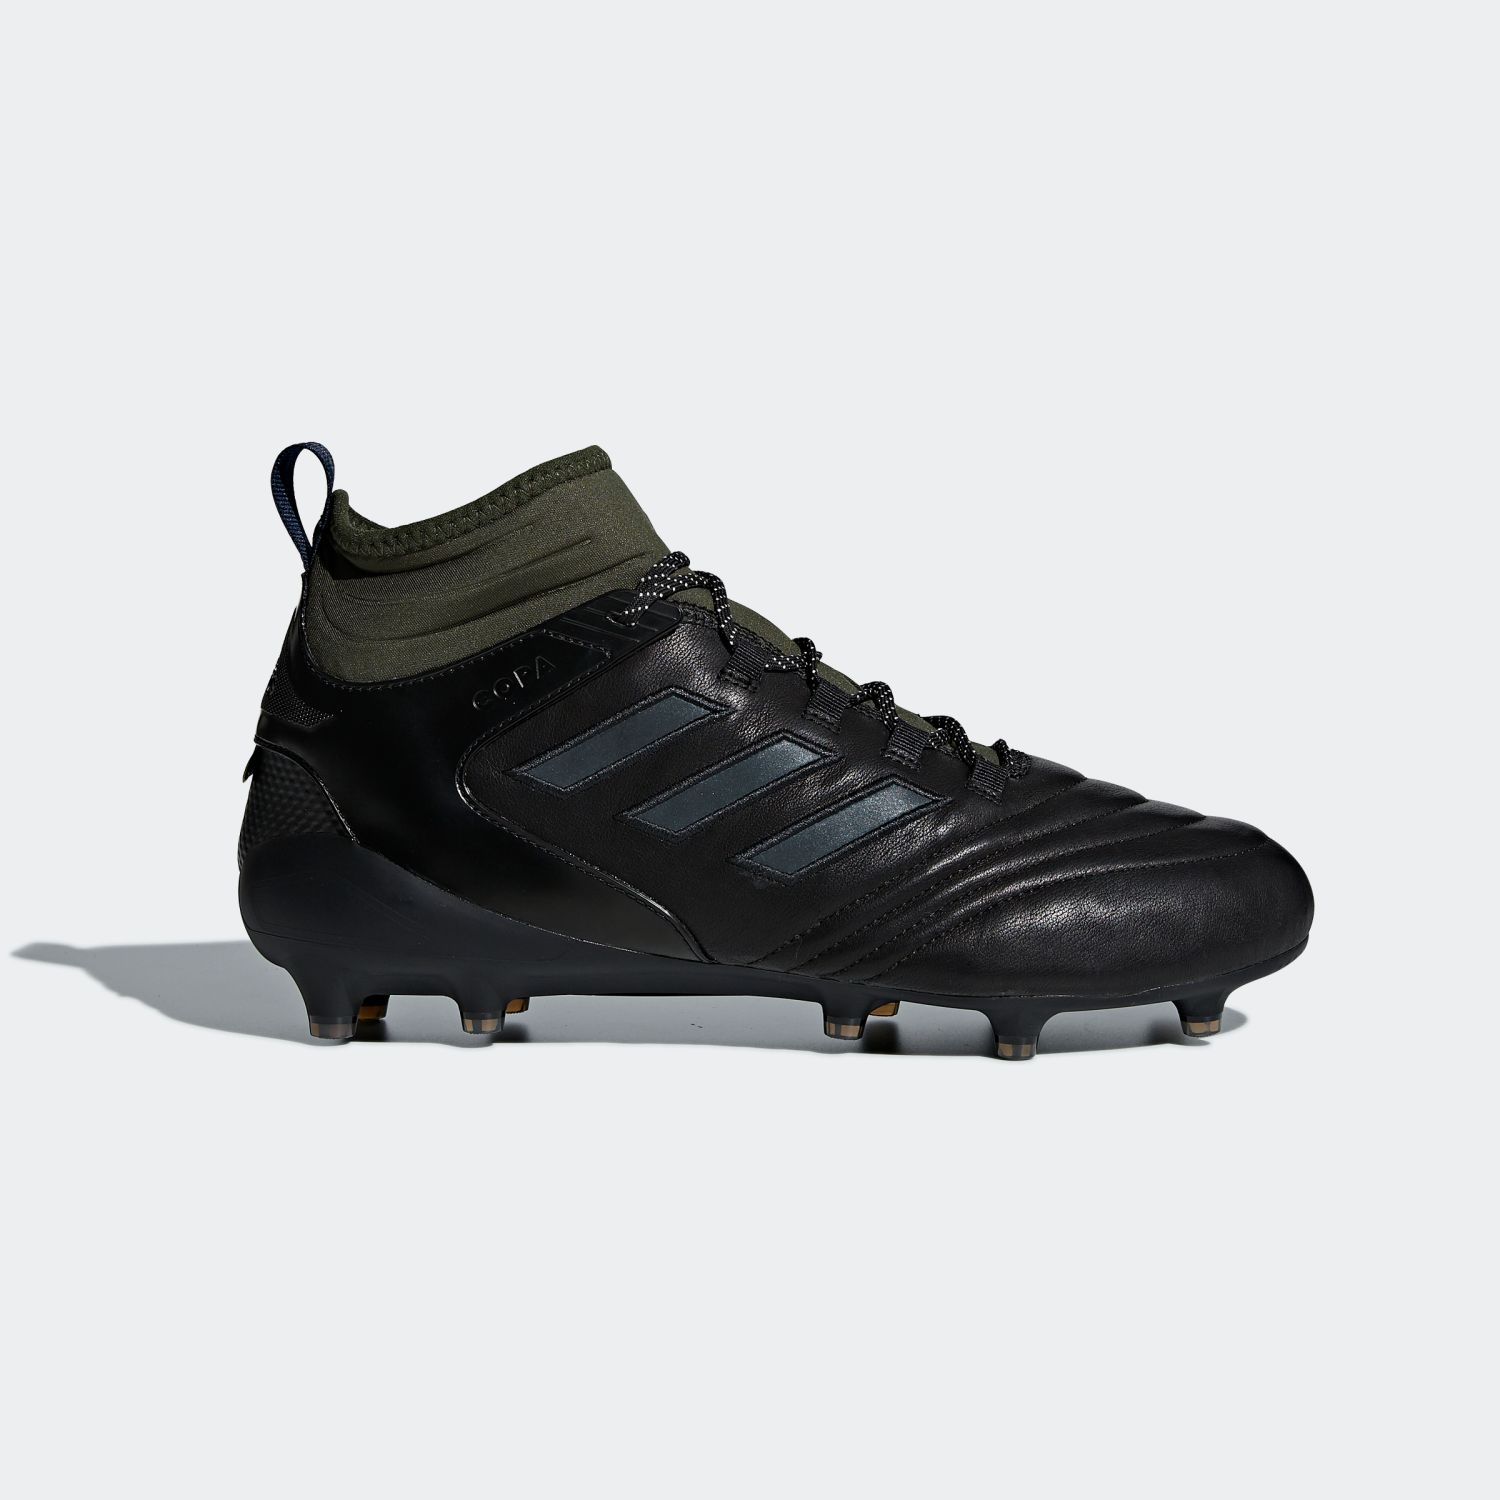 Copa Mid Firm Ground GORE-TEX Cleat Core Black Legend Ink